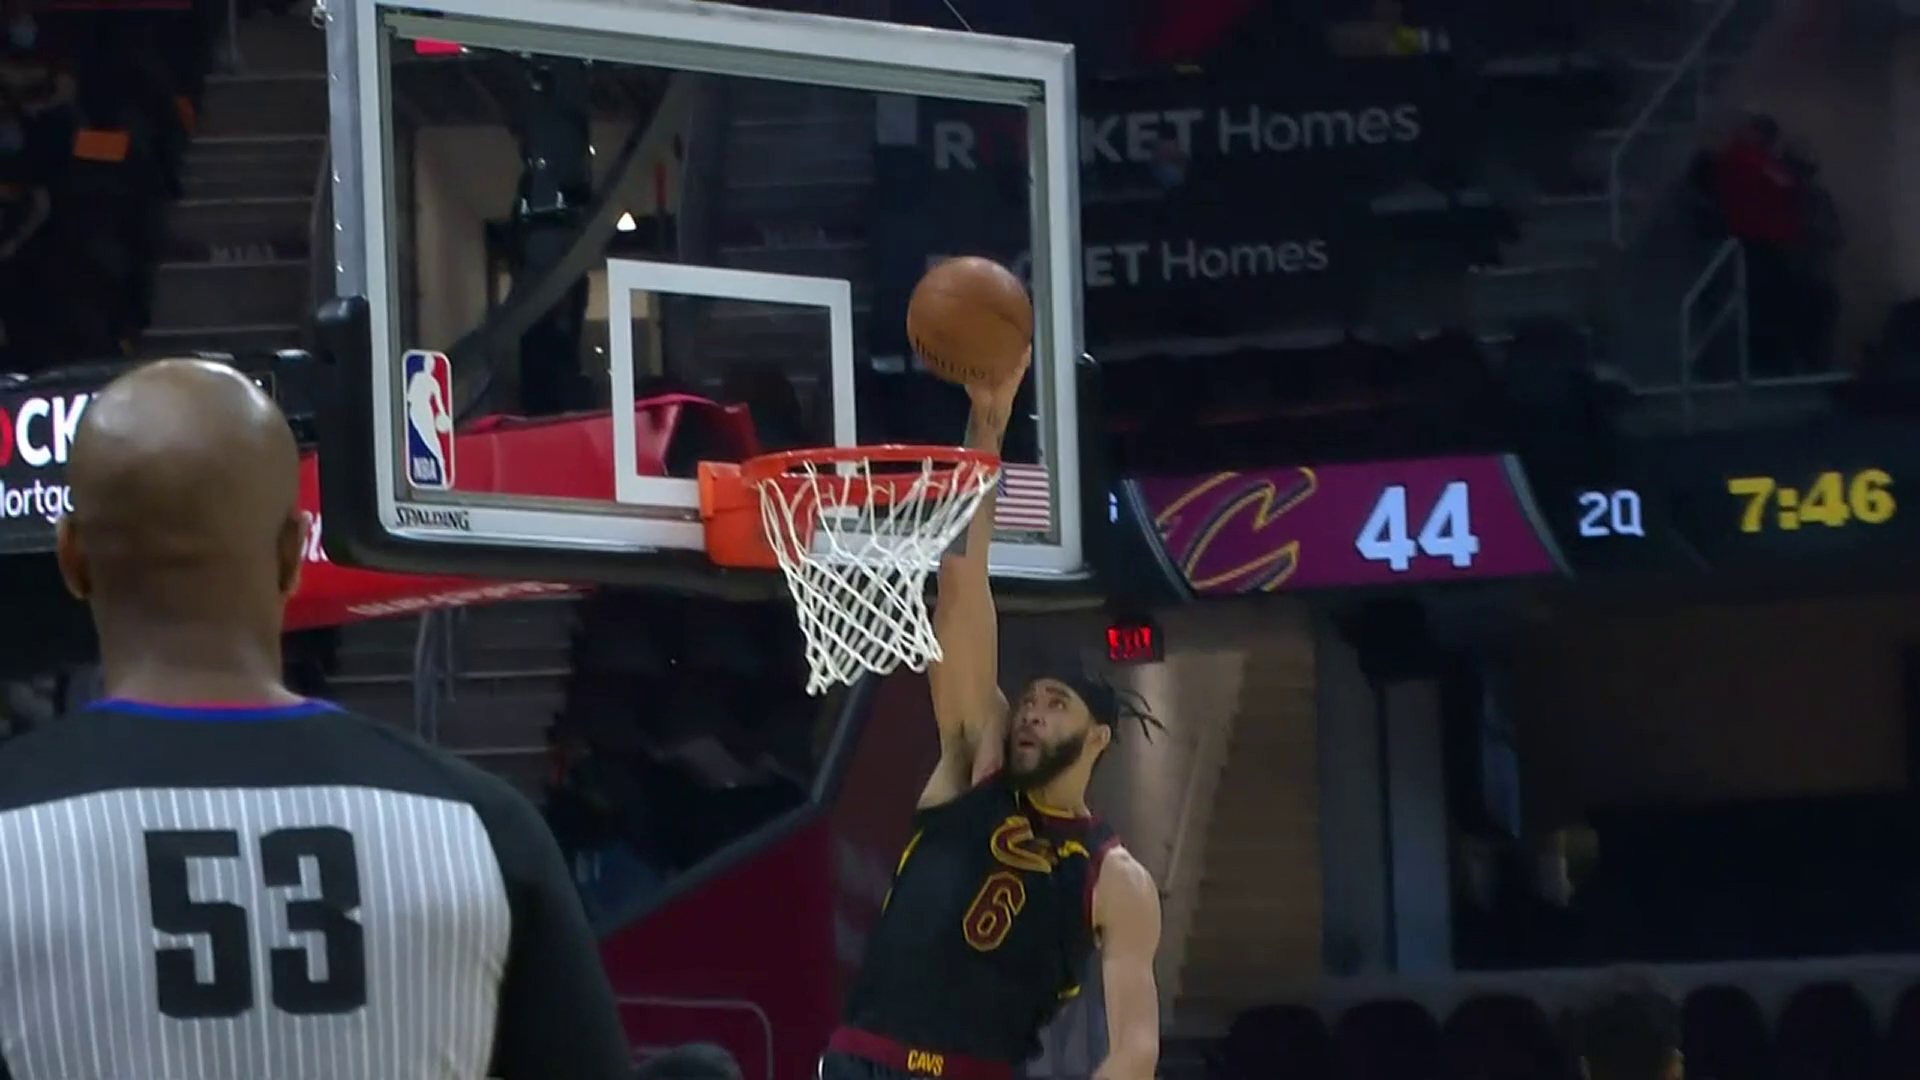 DG to McGee for the Dunk